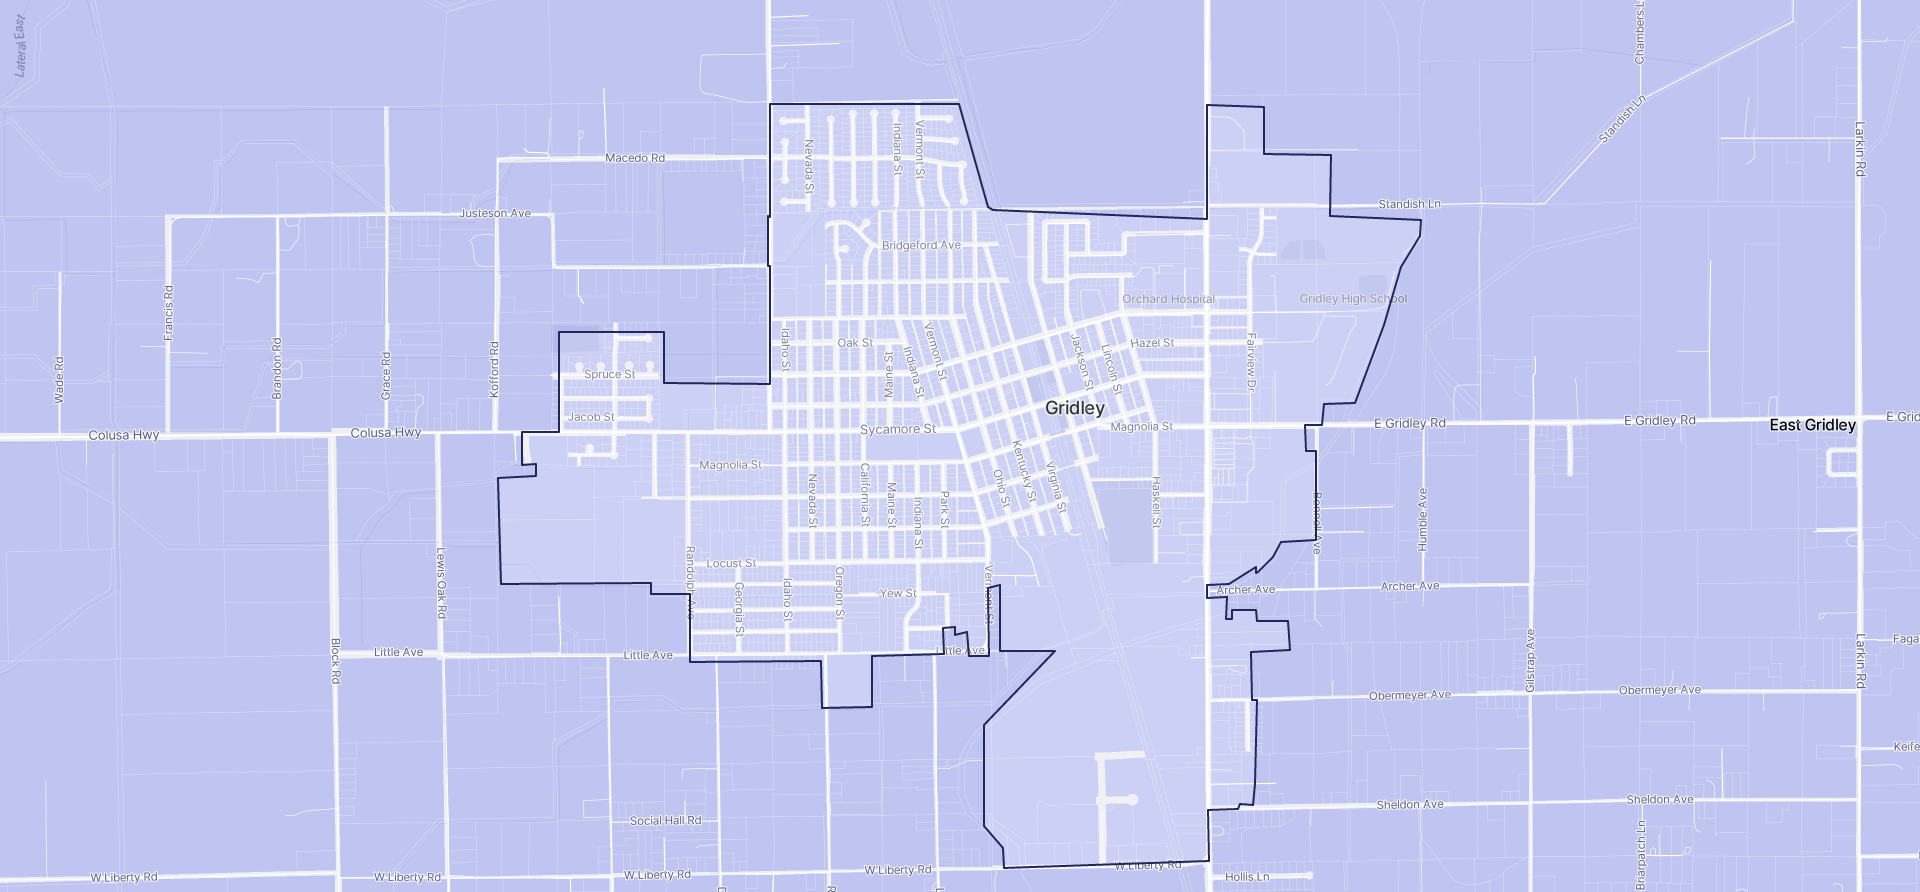 Image of Gridley boundaries on a map.